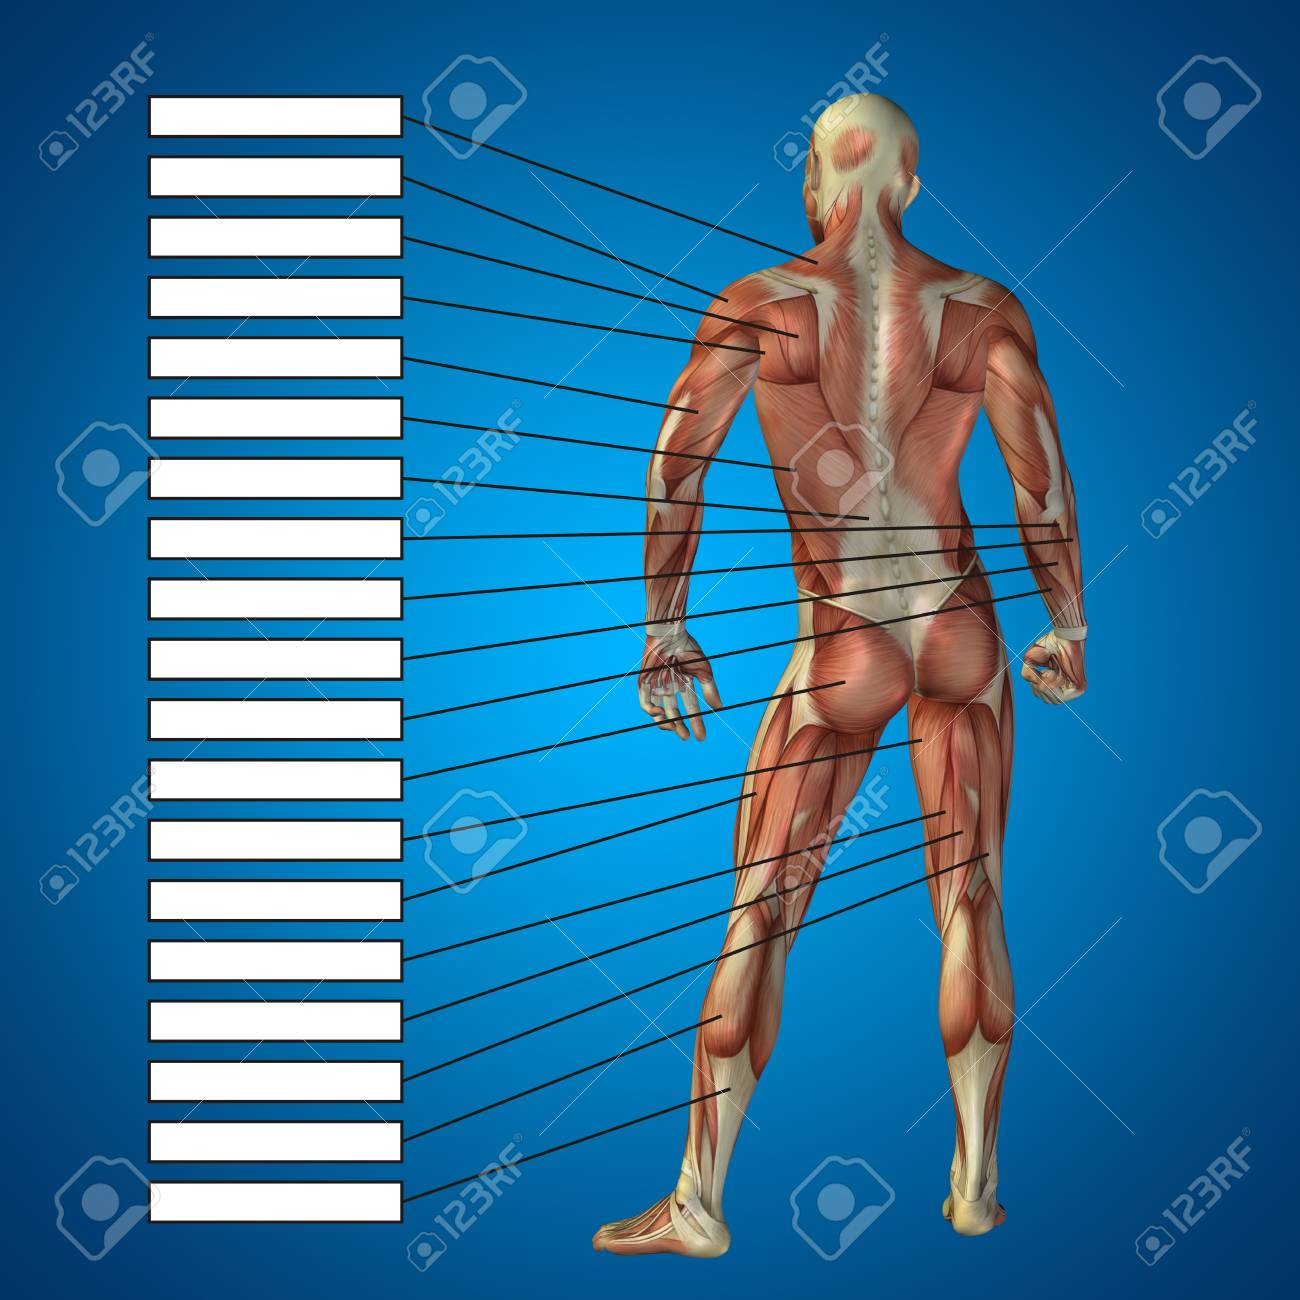 3D Human Male Anatomy With Muscles And Text Box On Blue Background ...